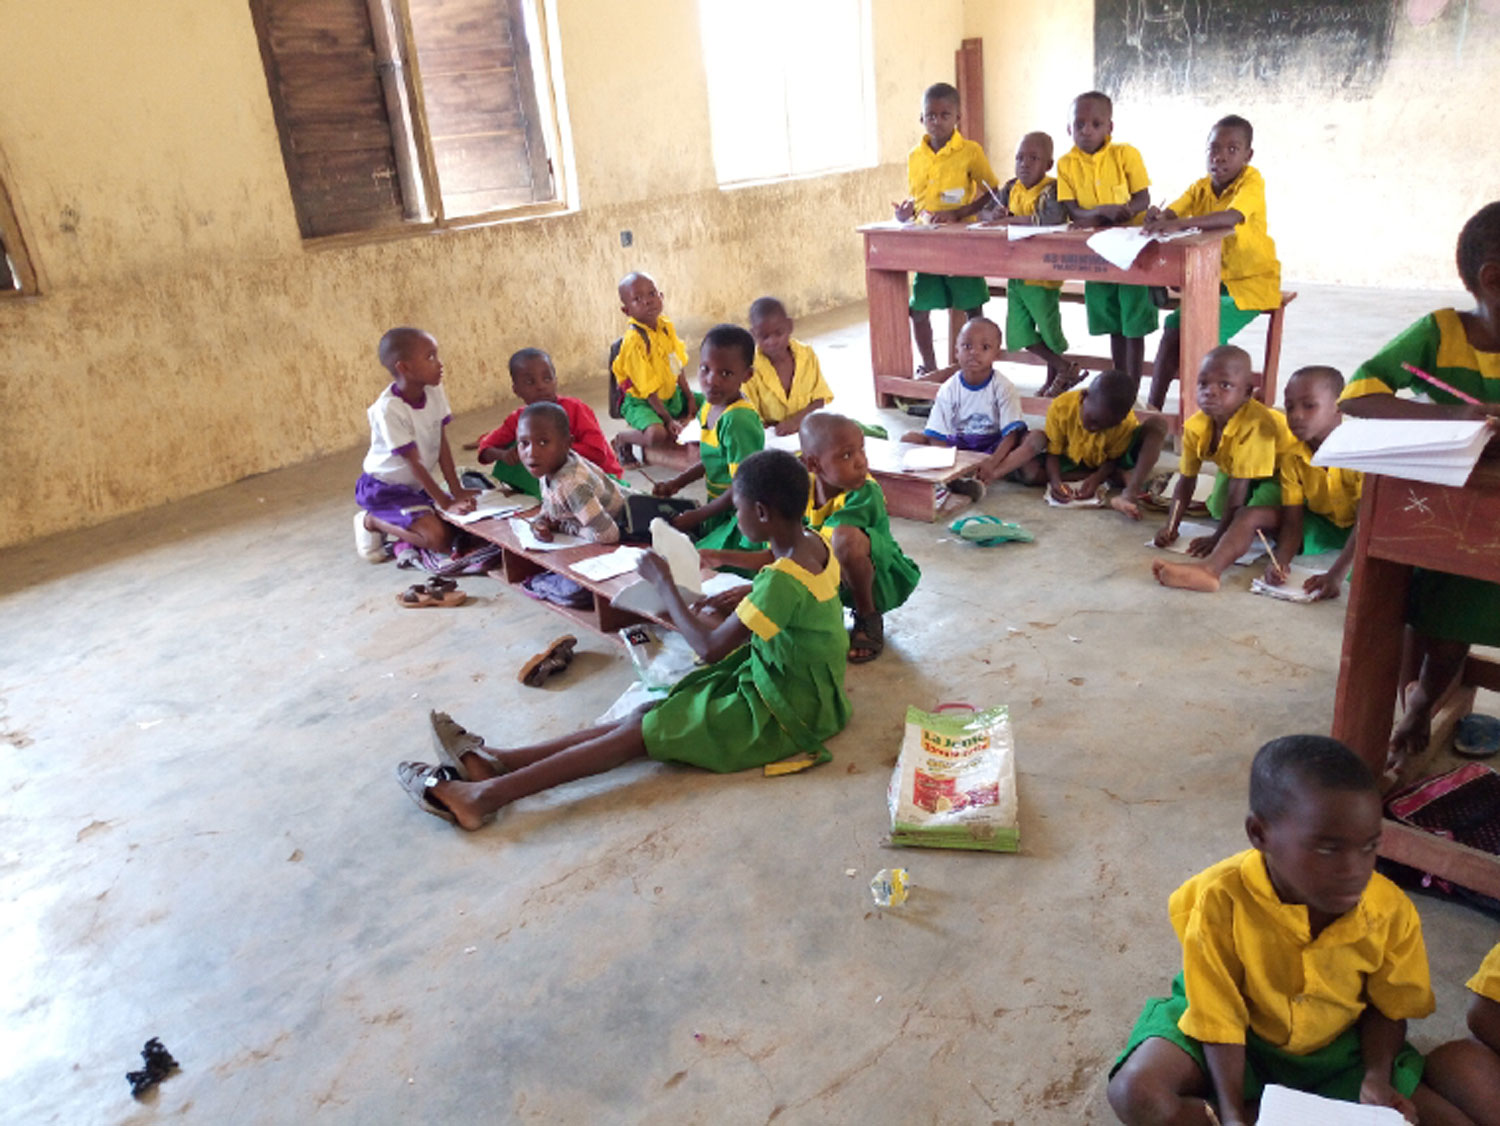 Pupils of Primary School, Nsukara Offot Uyo, sitting on the floor